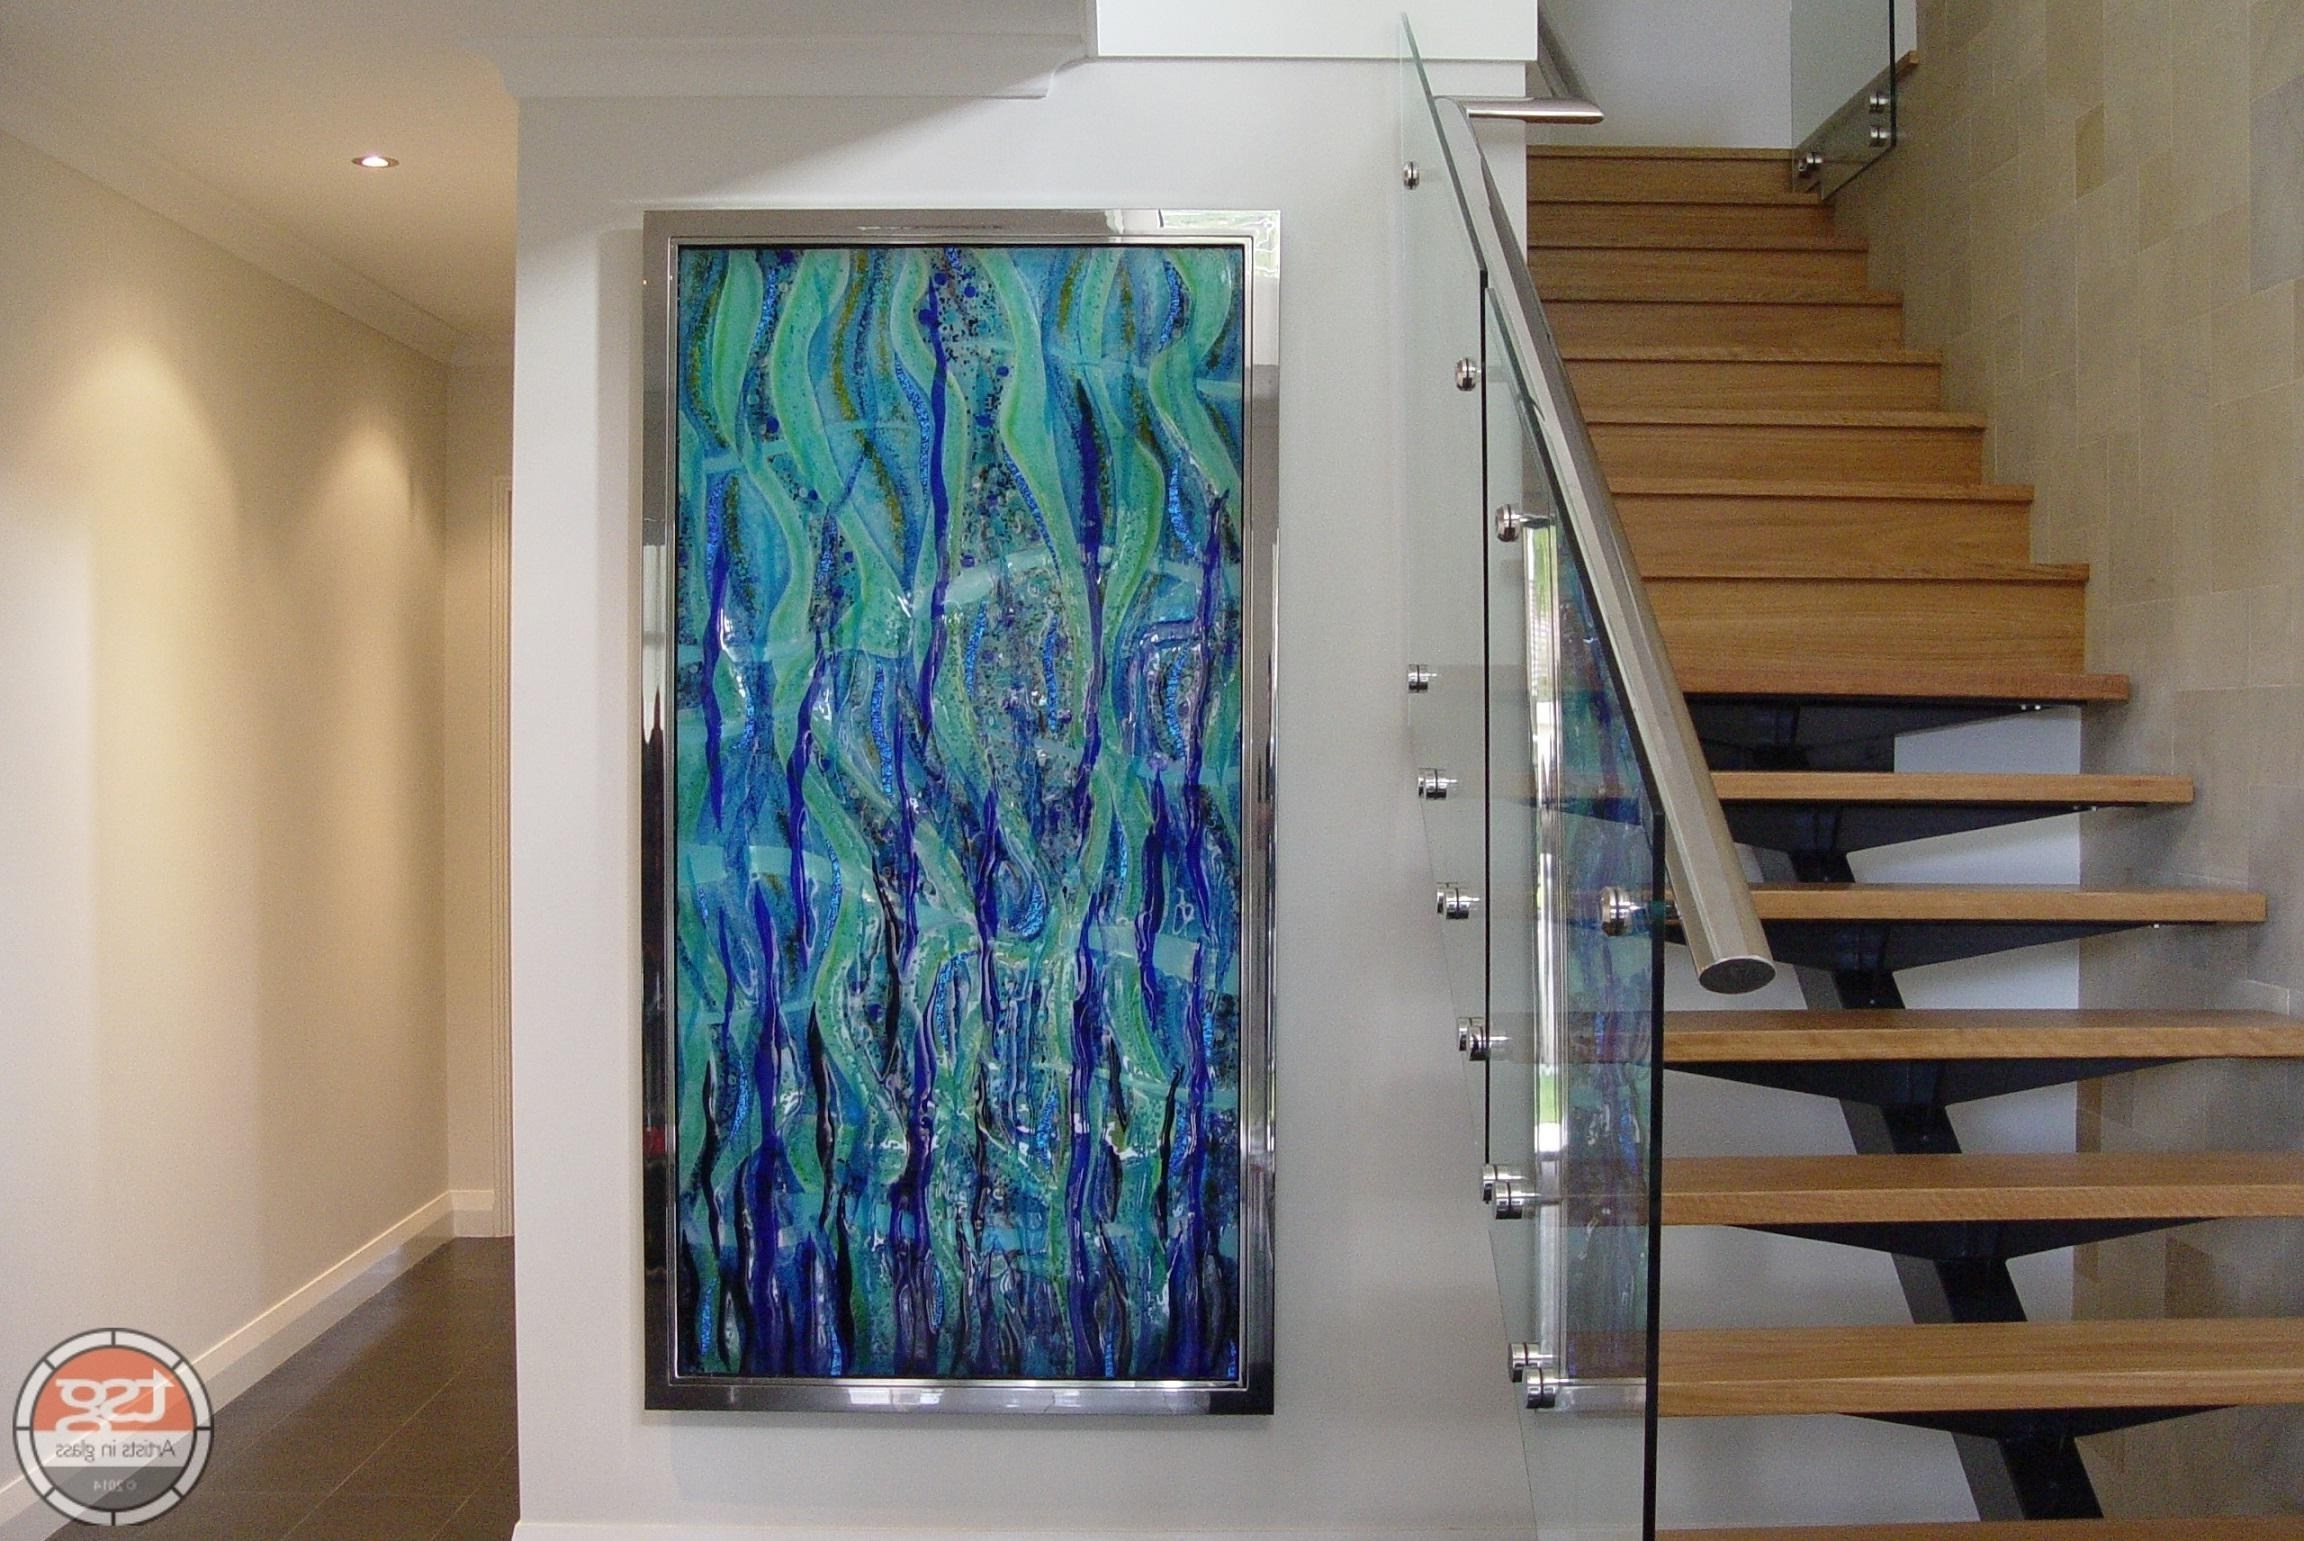 Favorite Inspiring Of Multi Colour Spiral Wall Panel Fused Glasssplashbacks With Framed Fused Glass Wall Art (View 4 of 15)